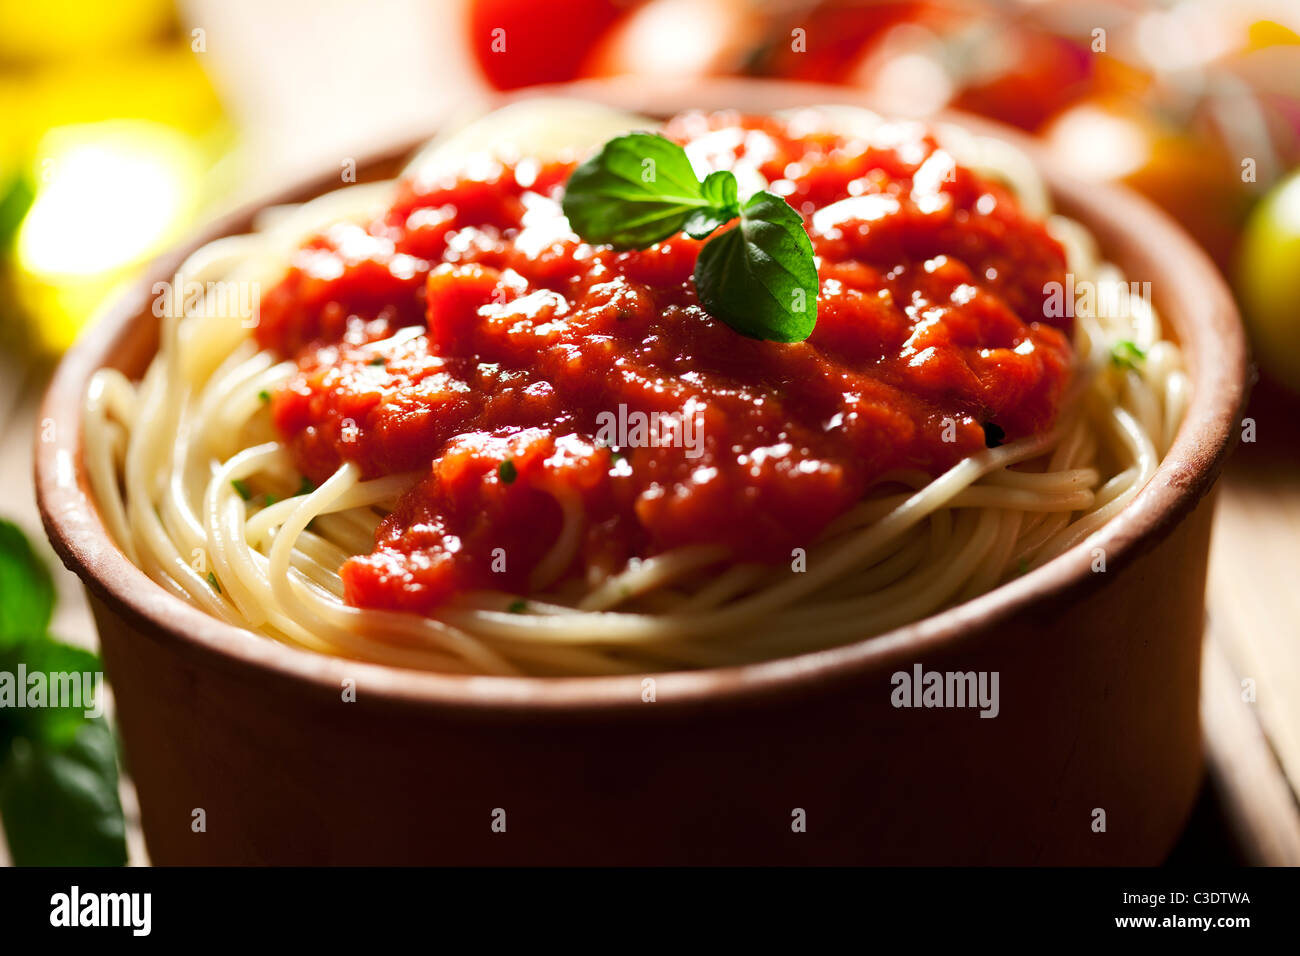 Spaghetti et sauce tomate Photo Stock